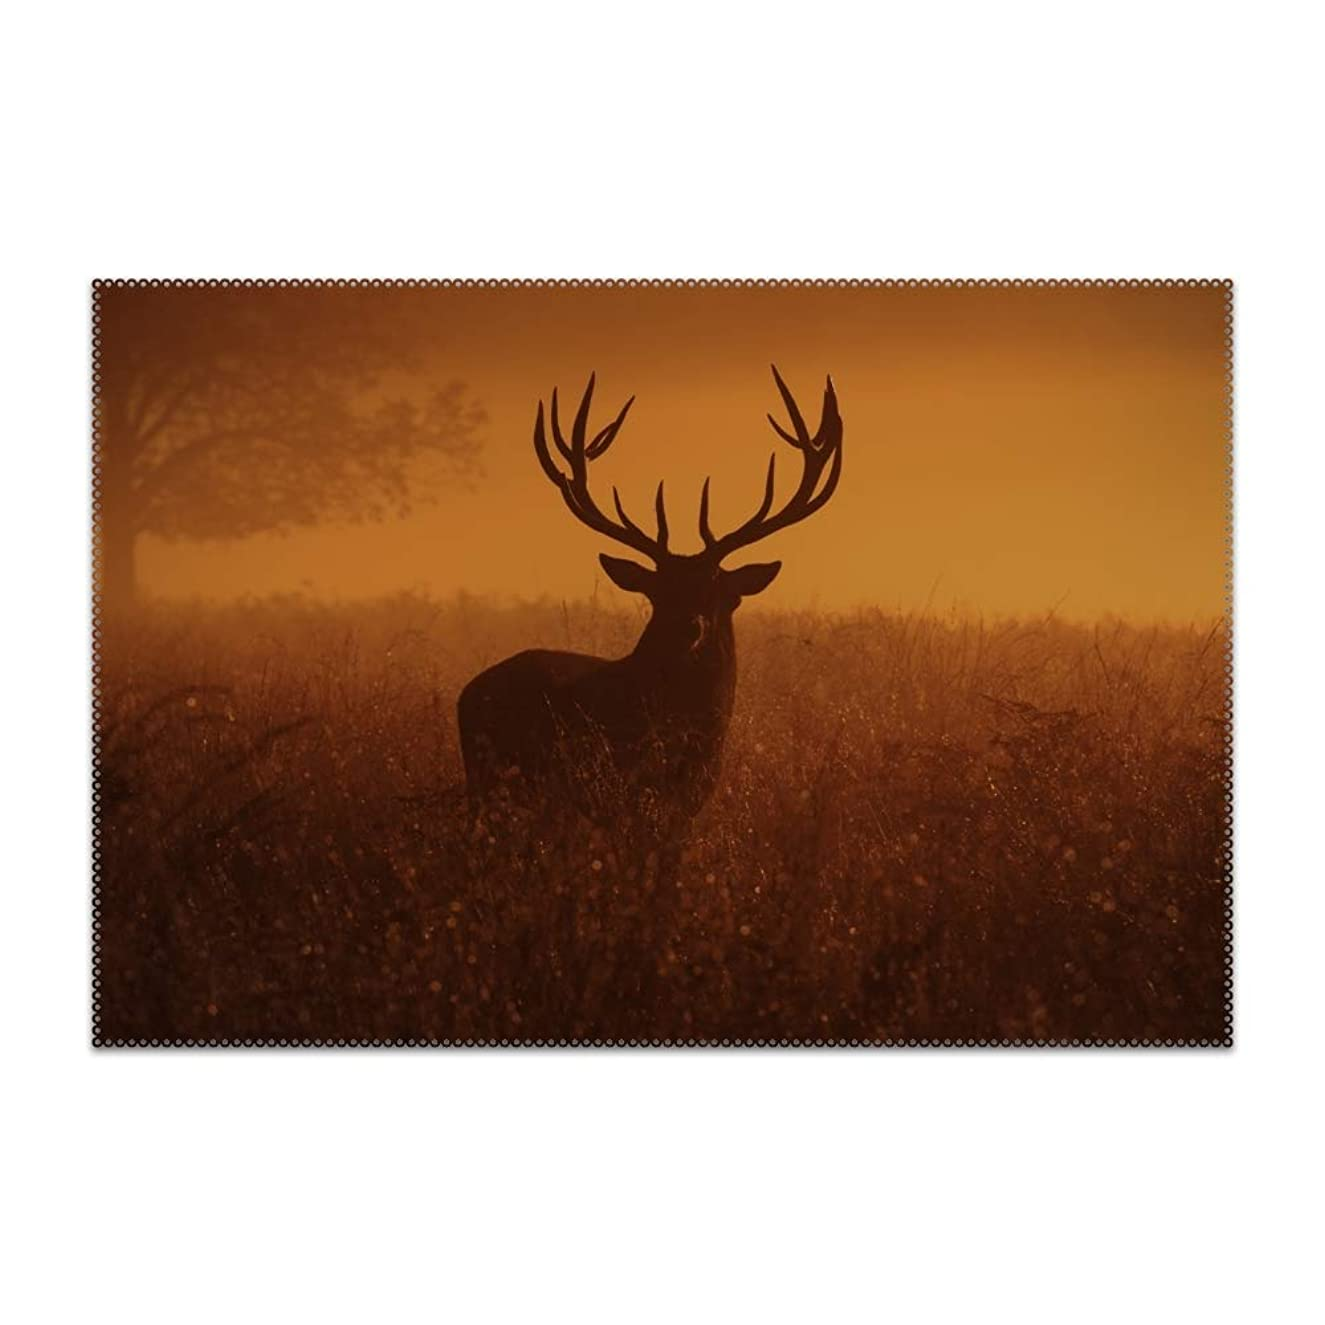 jiajufushi Herbivorous Deer Placemats Washable Placemats for Dining Table Heat Resistant Kitchen Table Mats Eat Meal Mat Easy to Clean